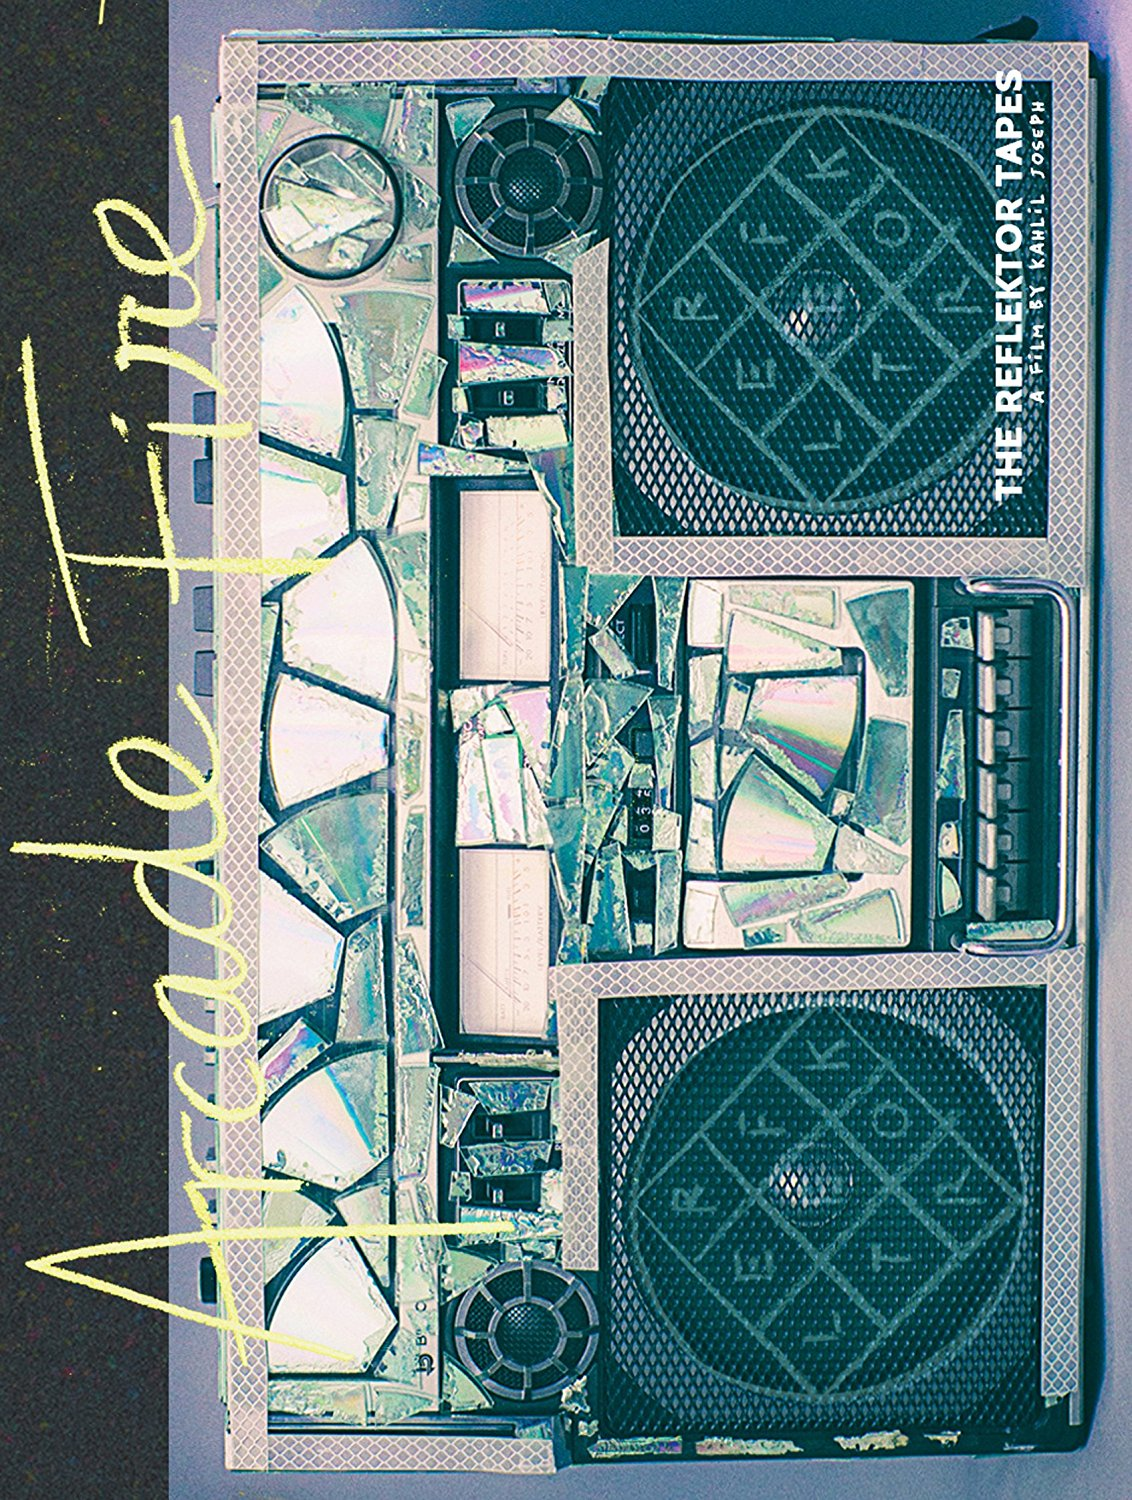 Arcade Fire - The Reflektor Tapes (DVD)